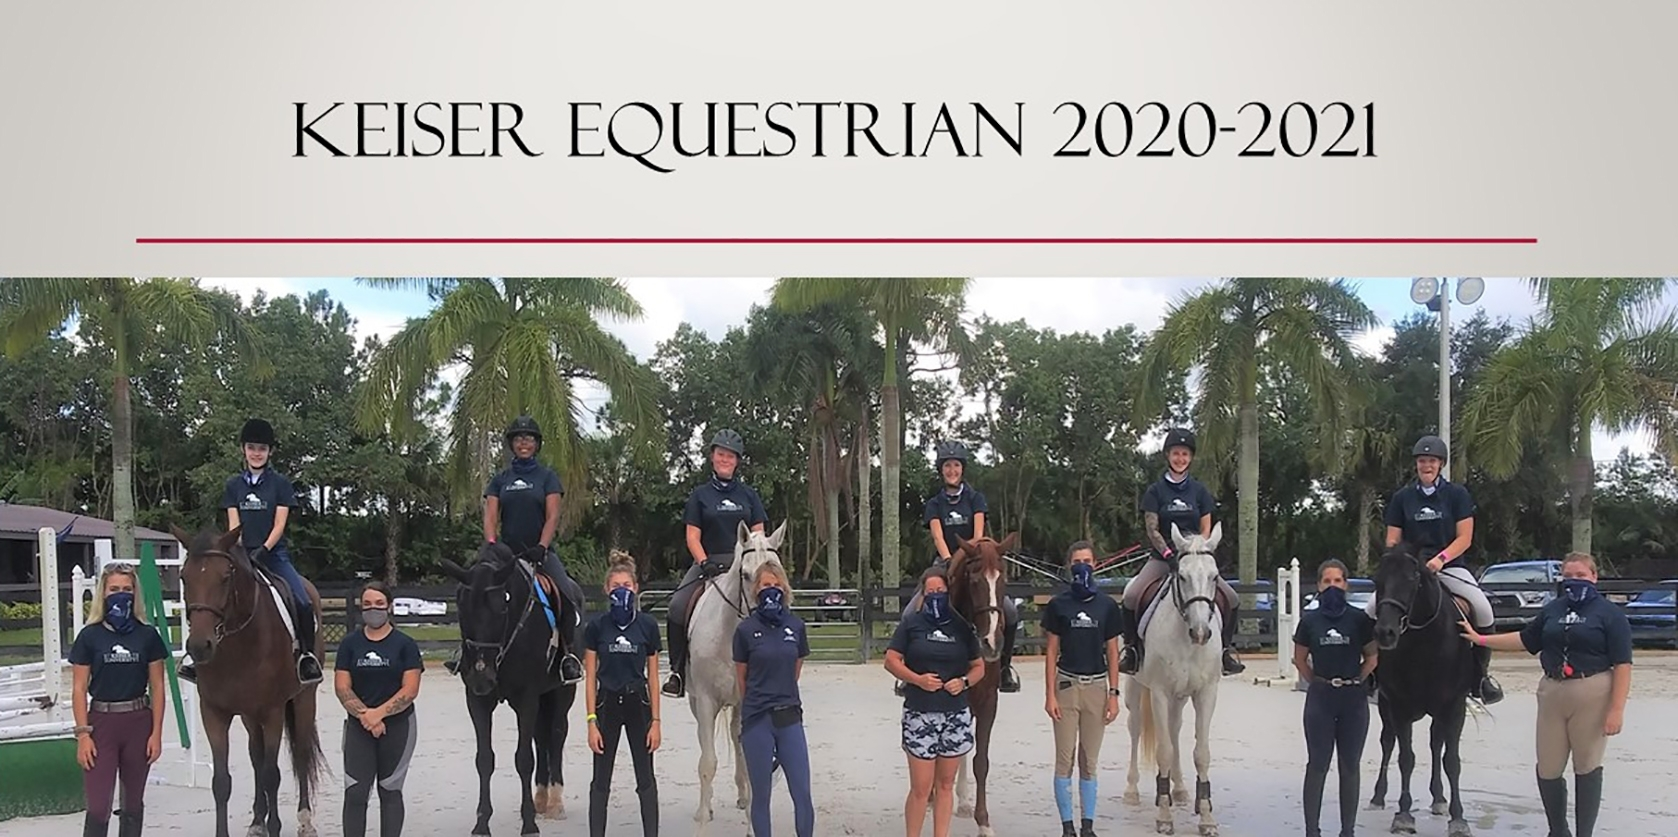 Keiser University Equestrian Students Prepare For An